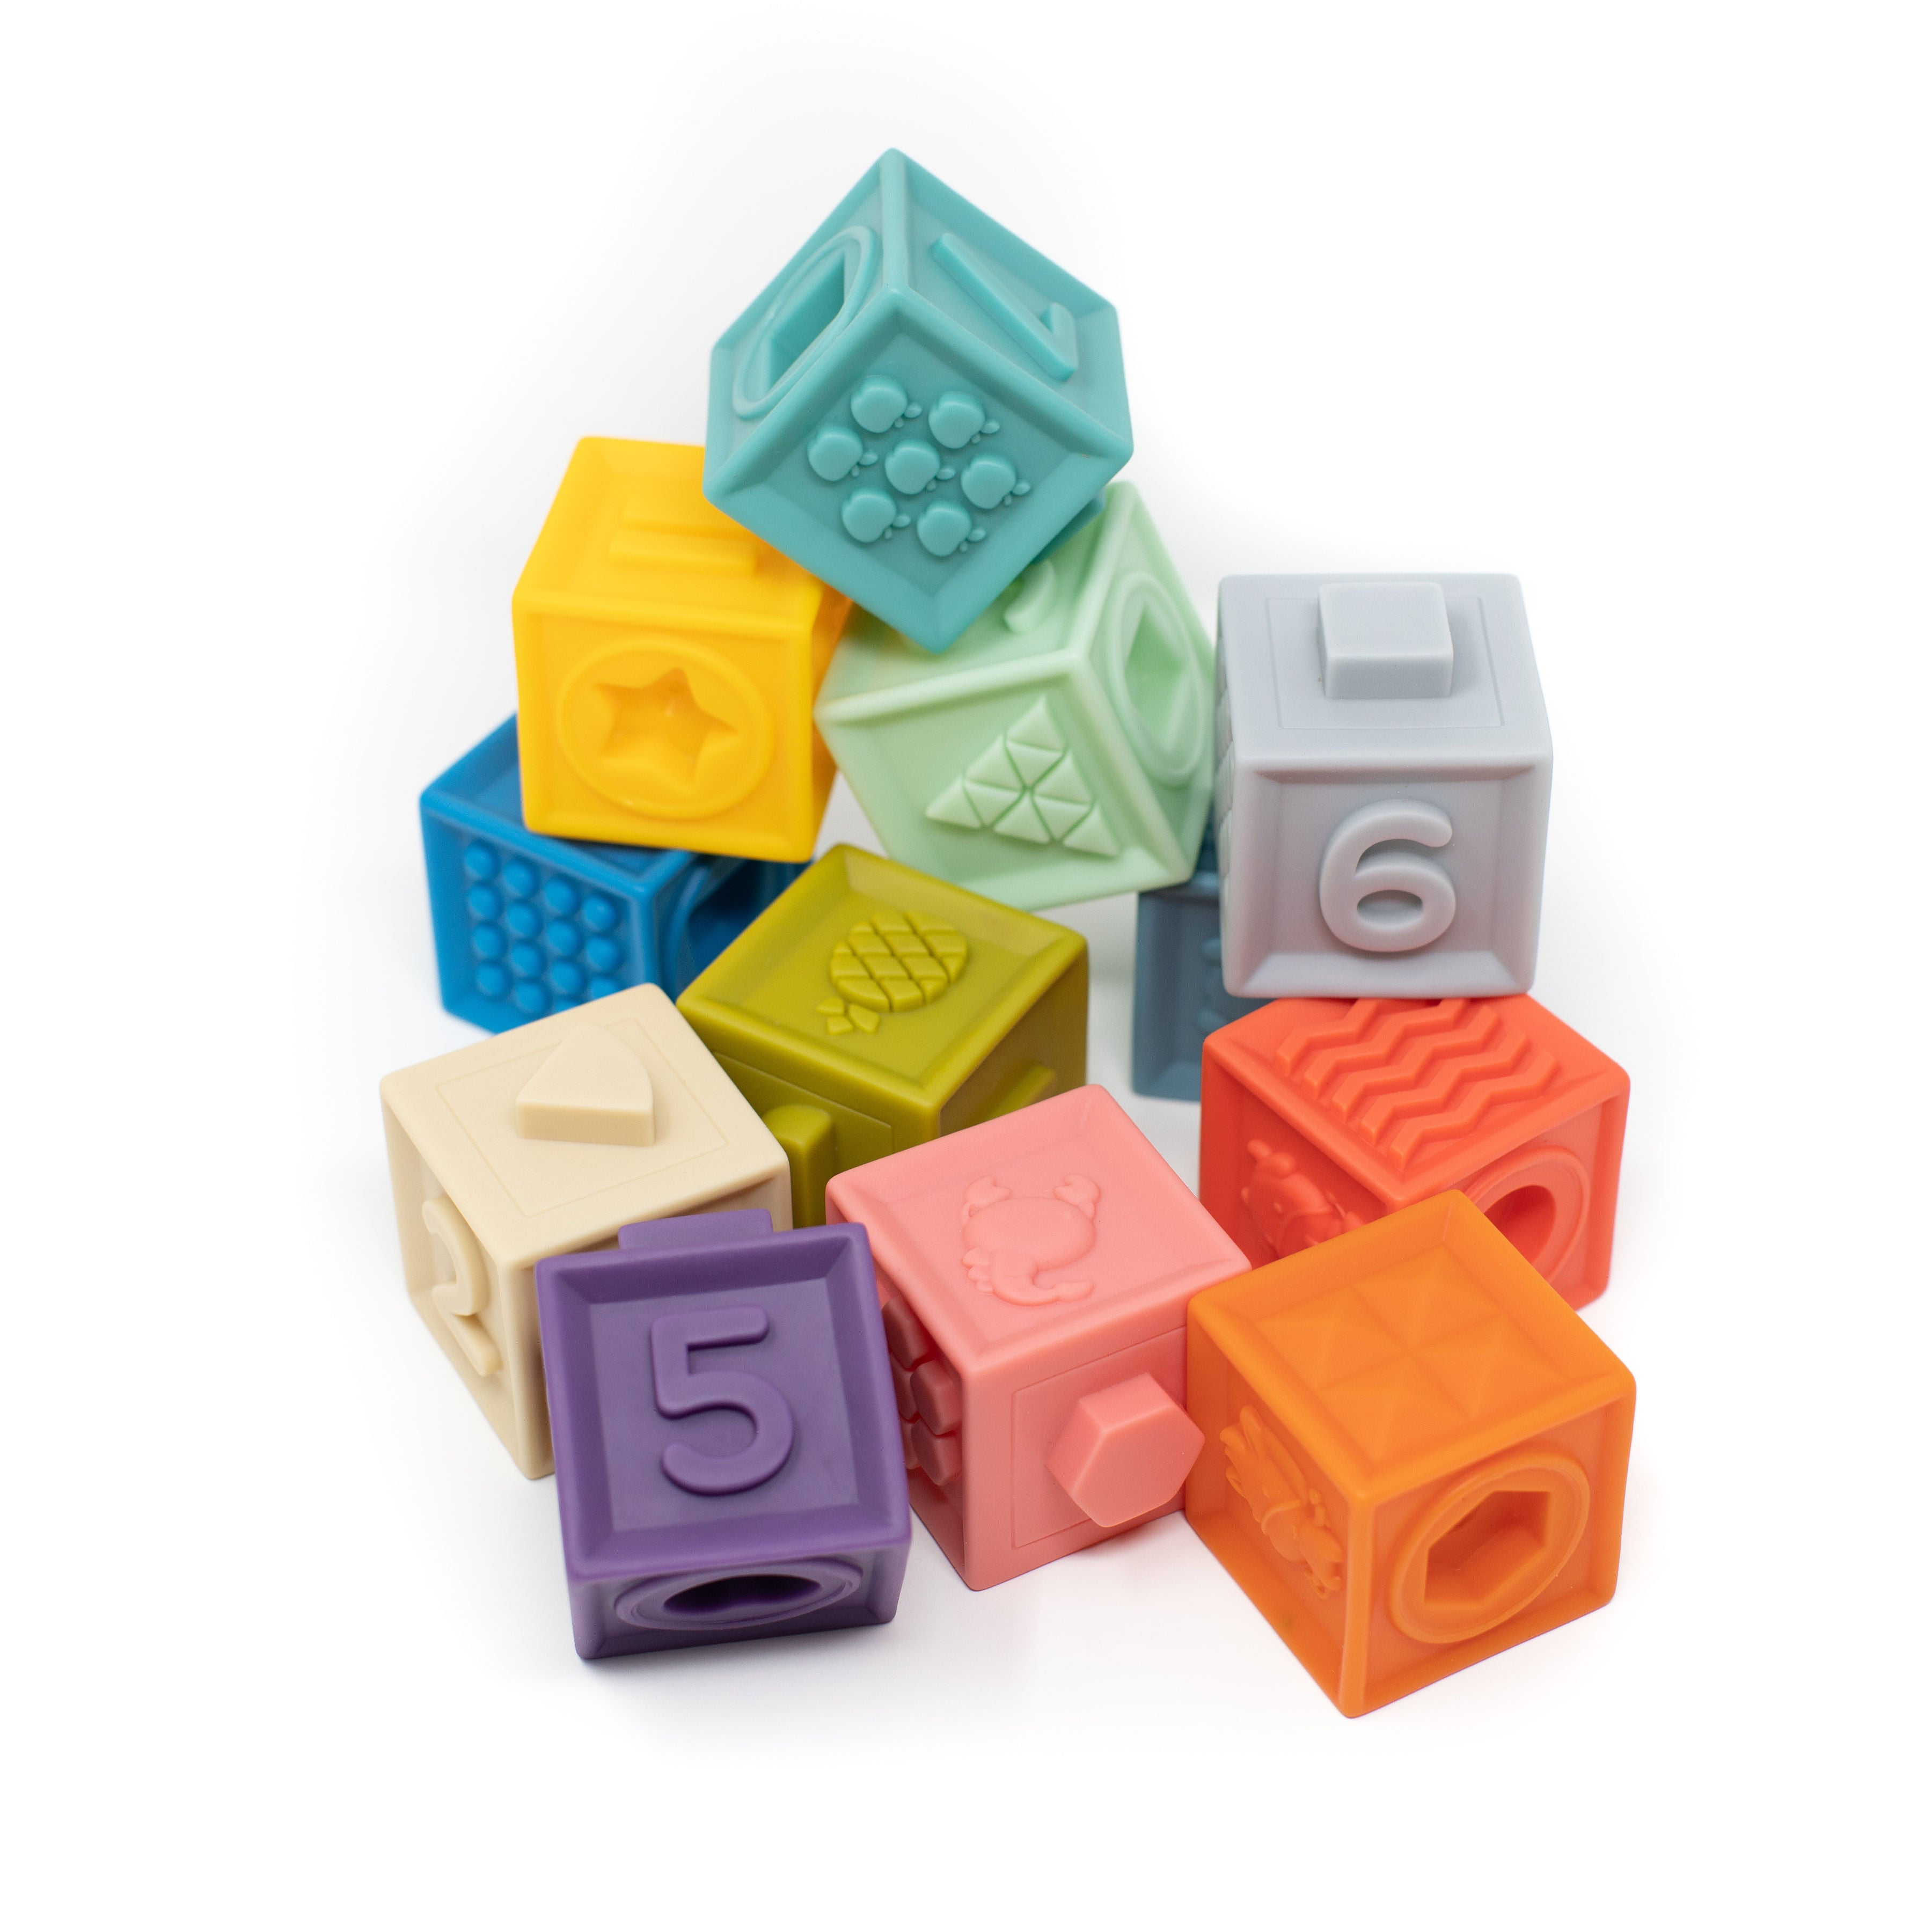 Building Block Teether & Bath Toy Primary - Modern Baby Shower Gifts